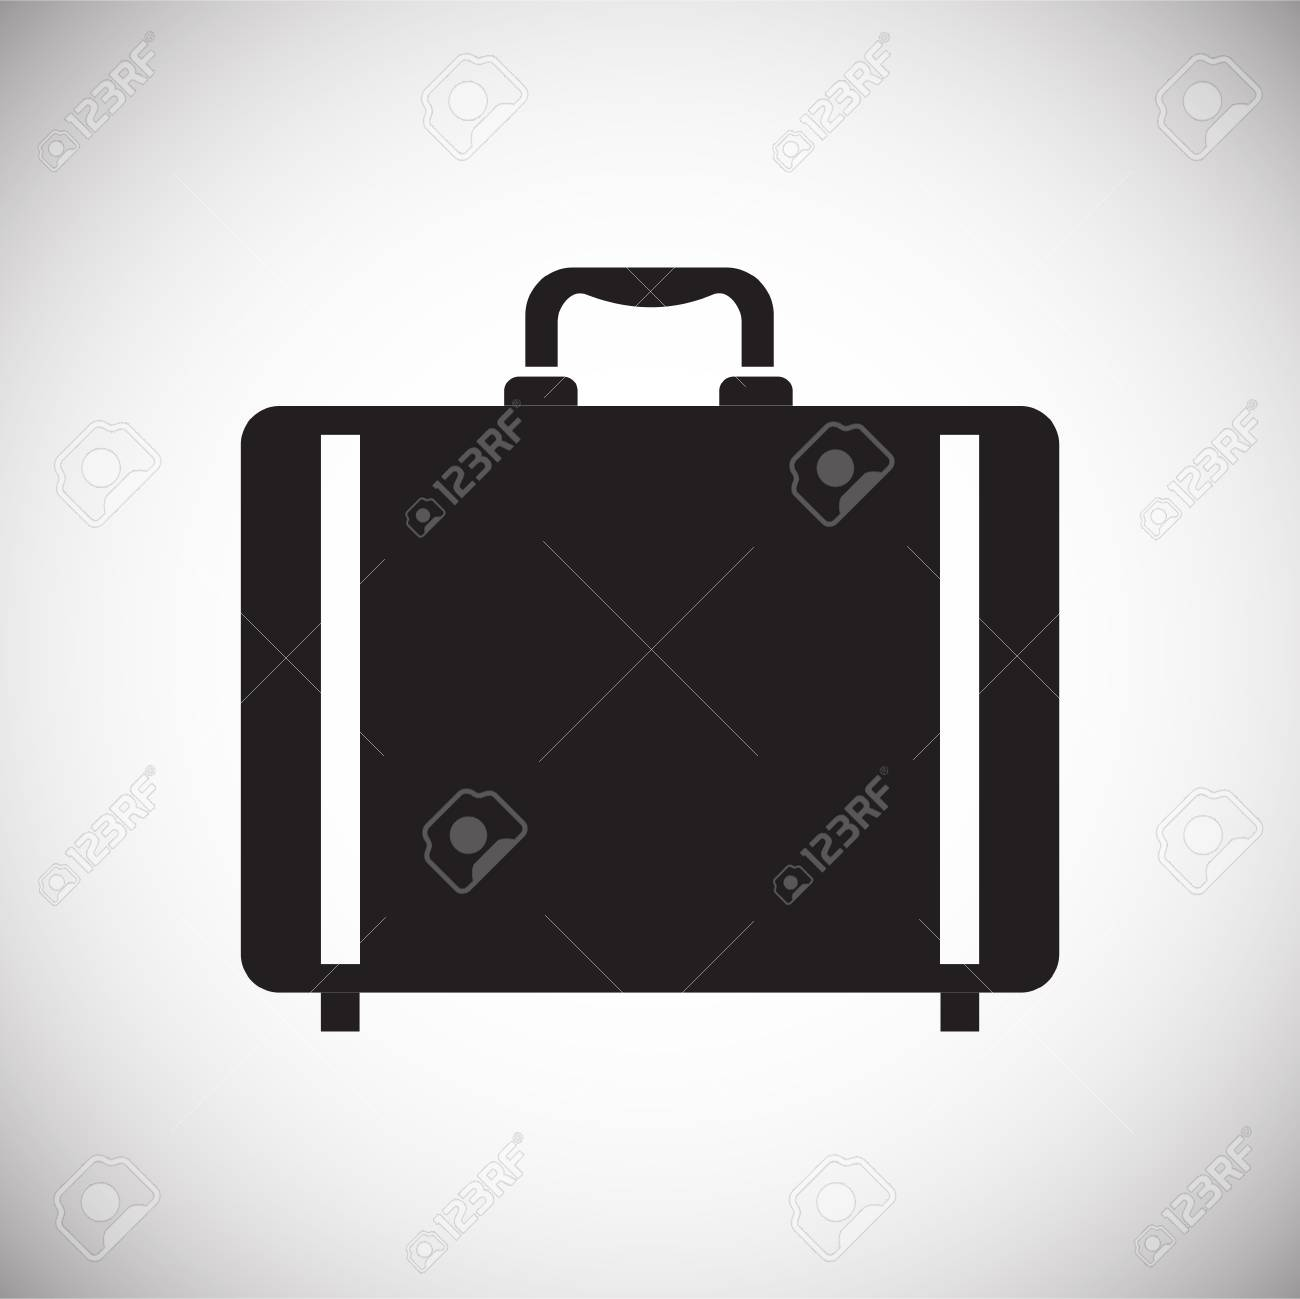 Case icon on background for graphic and web design. Simple vector sign. Internet concept symbol for website button or mobile app - 123039572